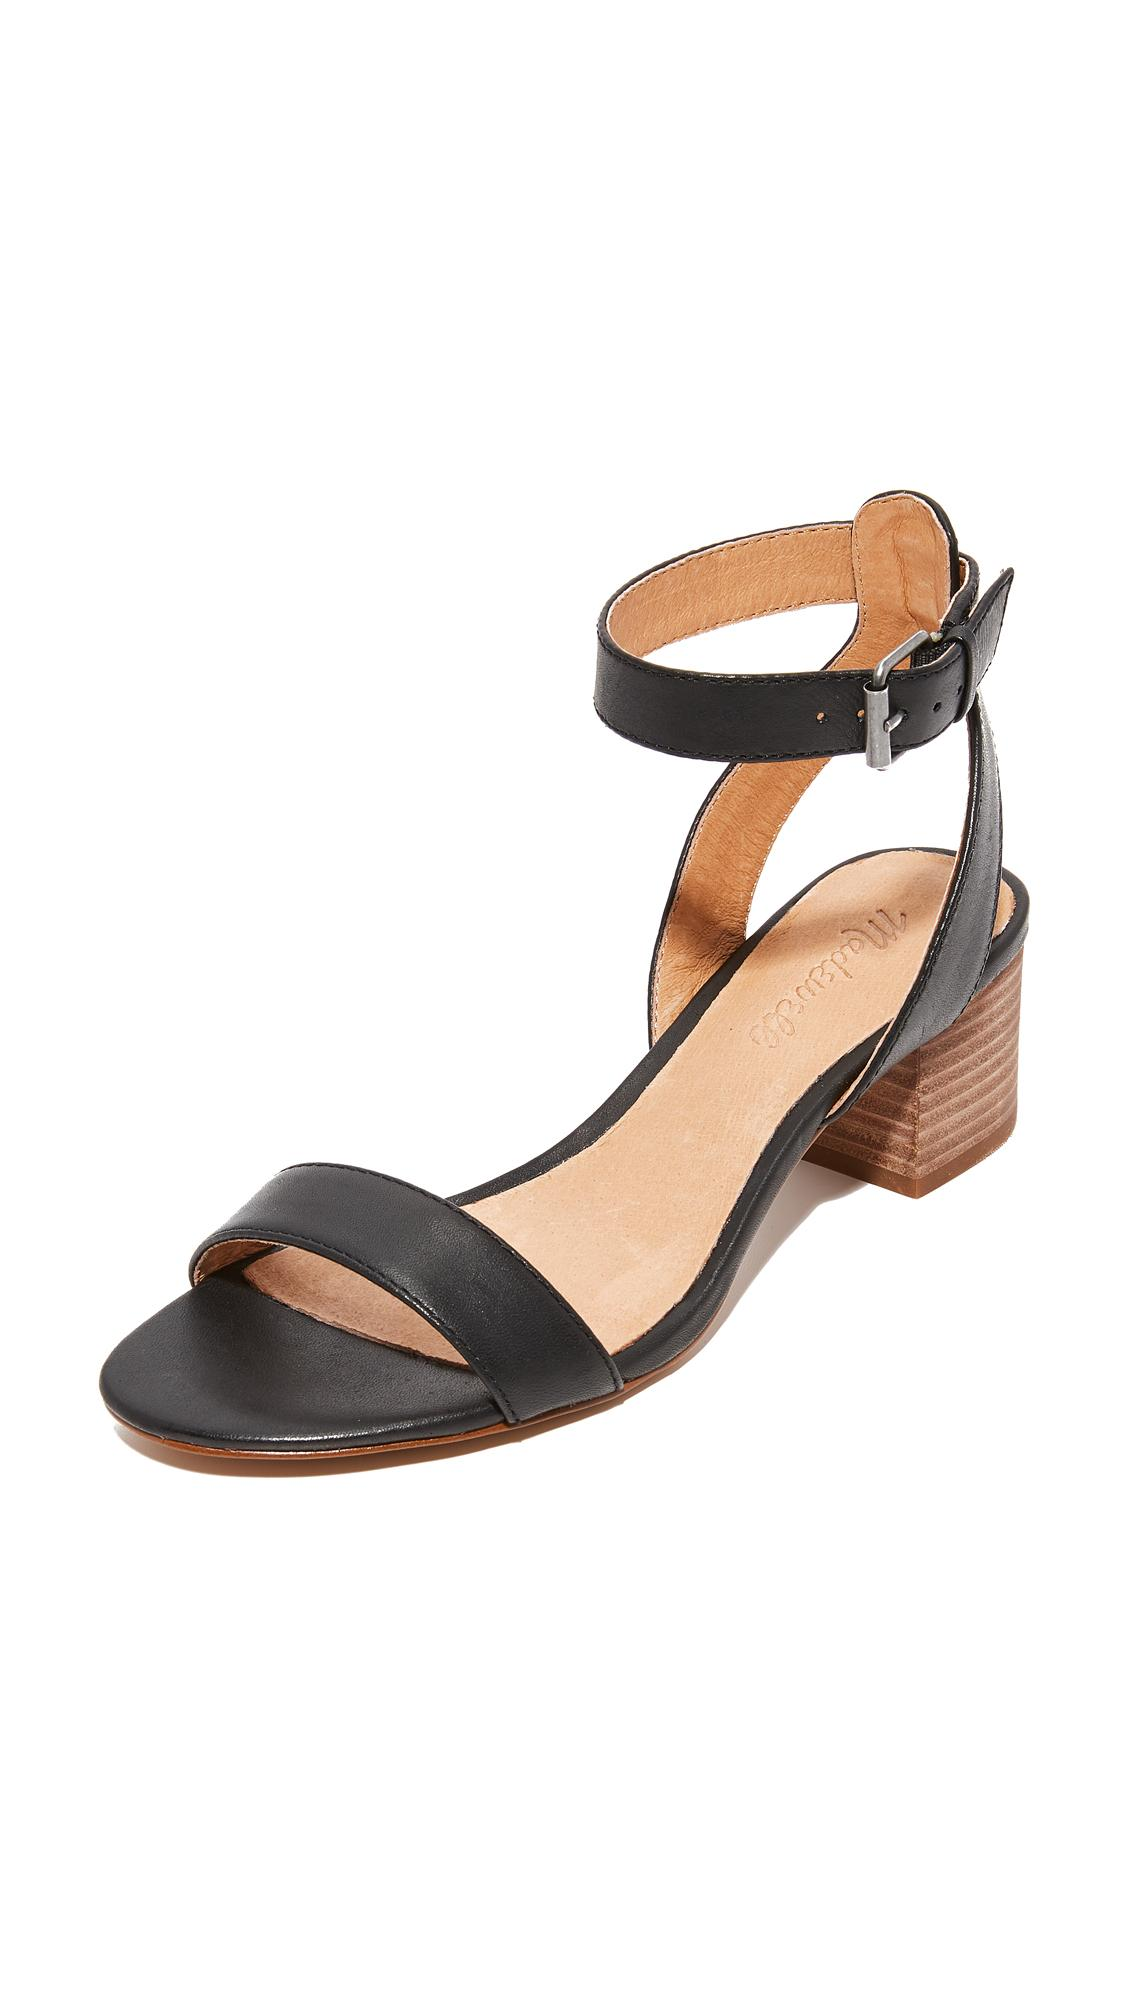 Madewell Alice Sandals In Black Lyst